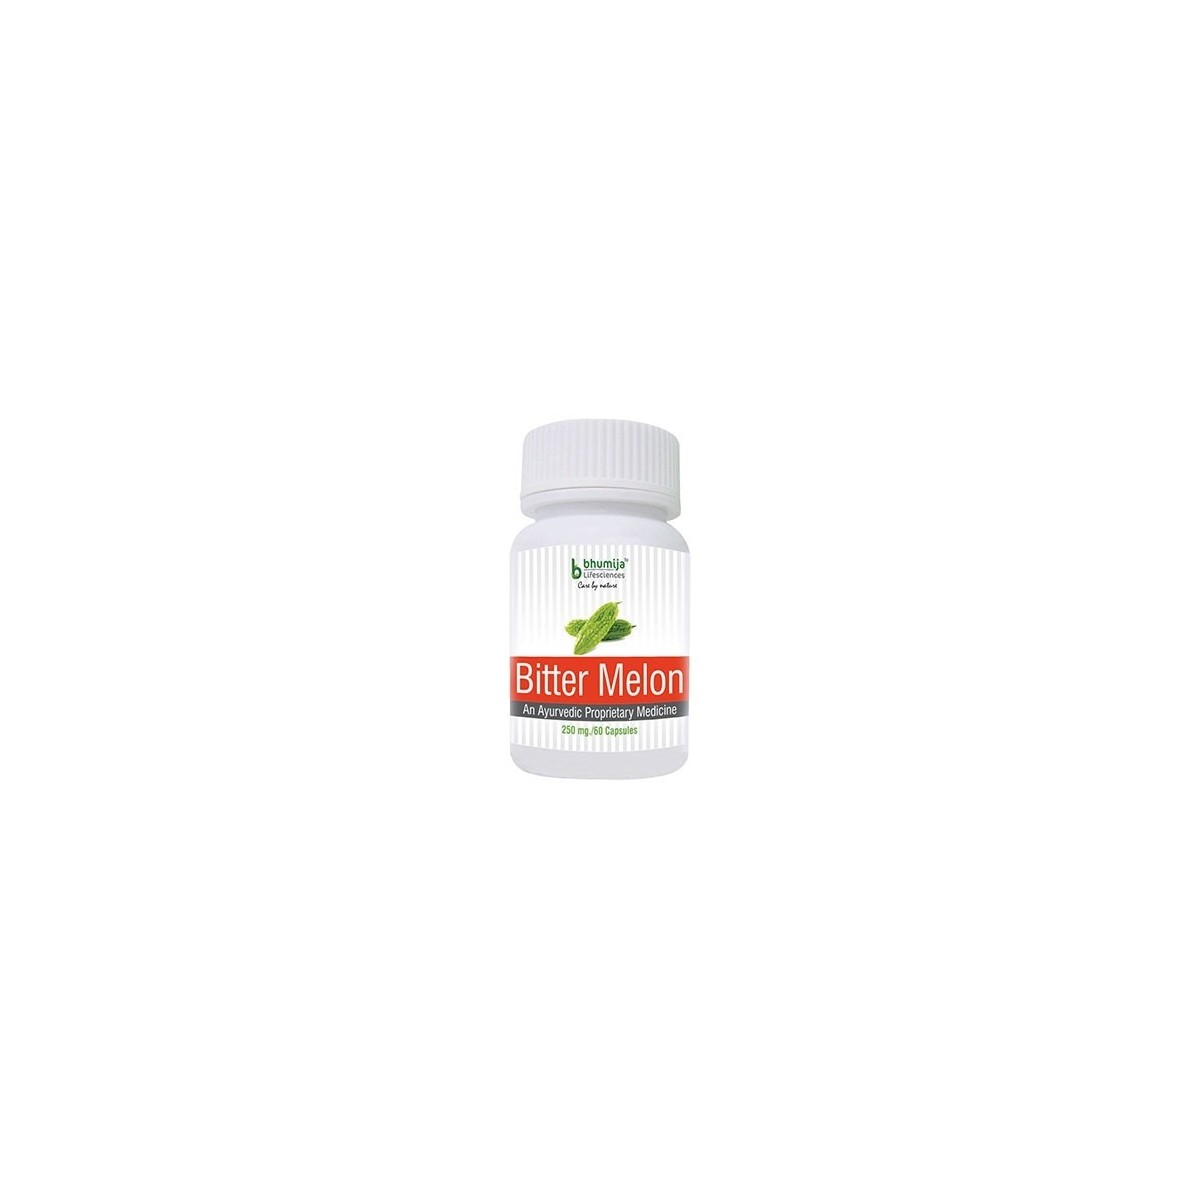 Bhumija Lifesciences Bitter Melon Capsules 60